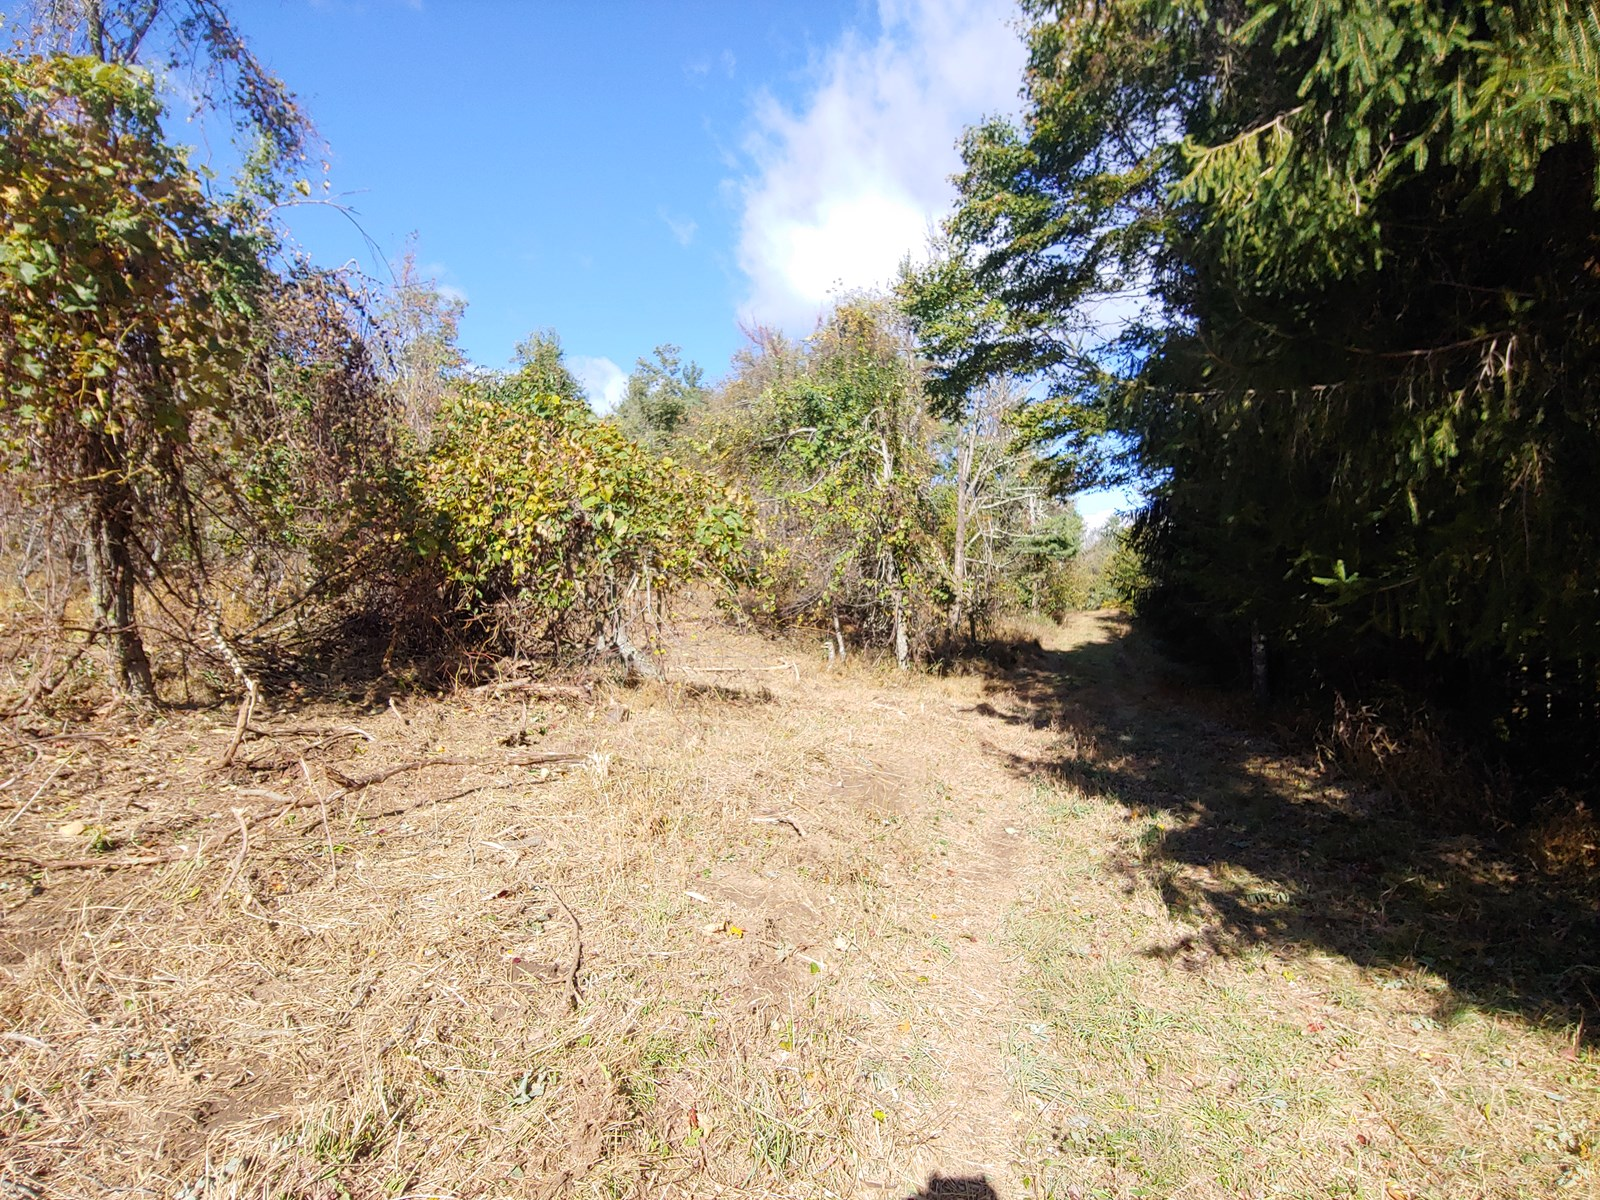 Land for Sale Near the Blue Ridge Parkway in Floyd VA!